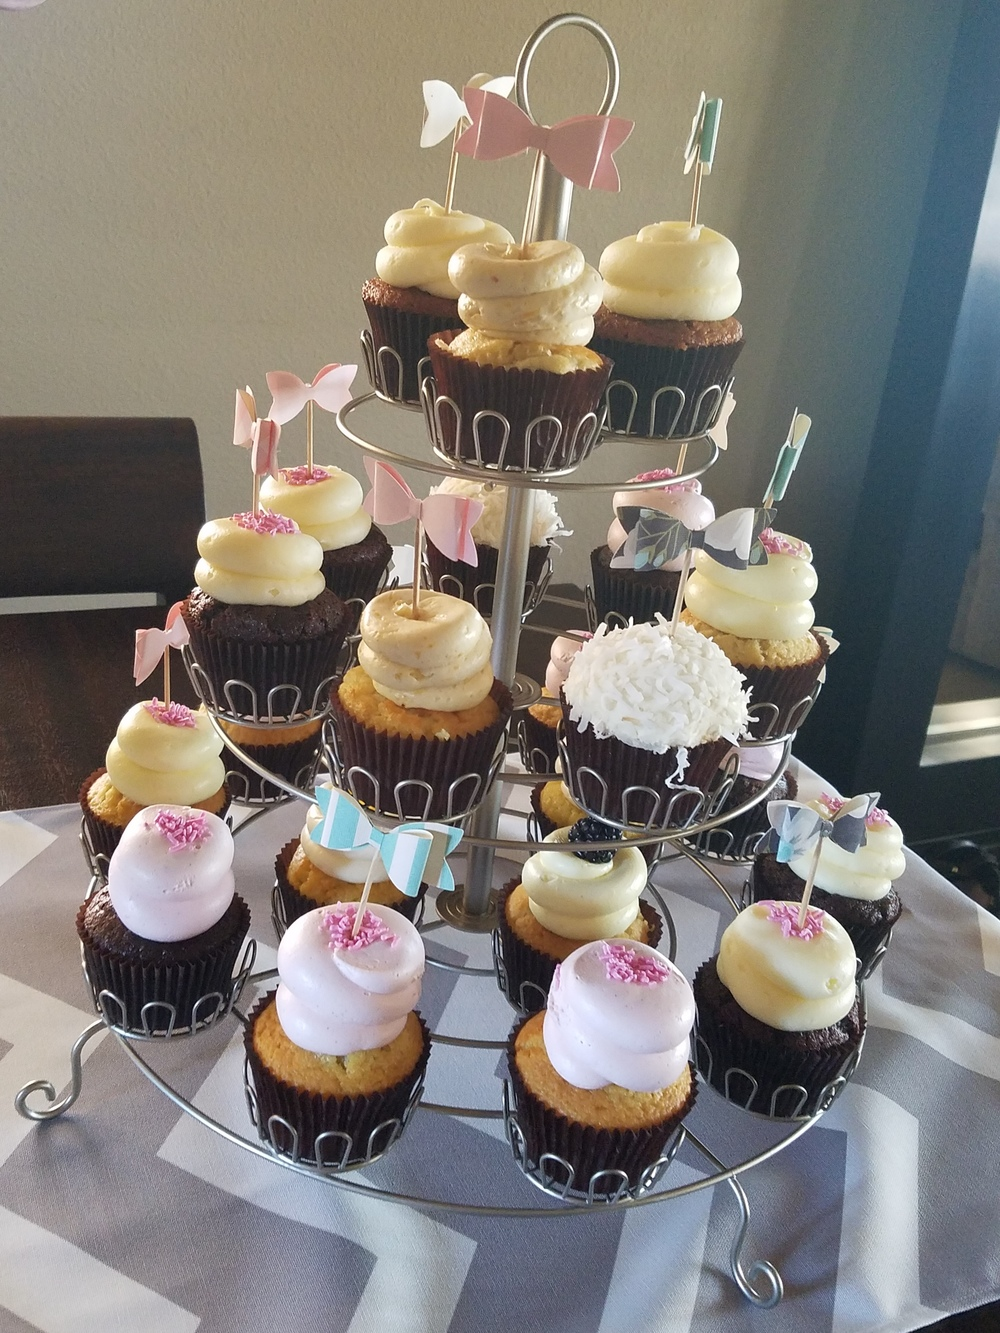 Cupcakes from Urban Cookie!